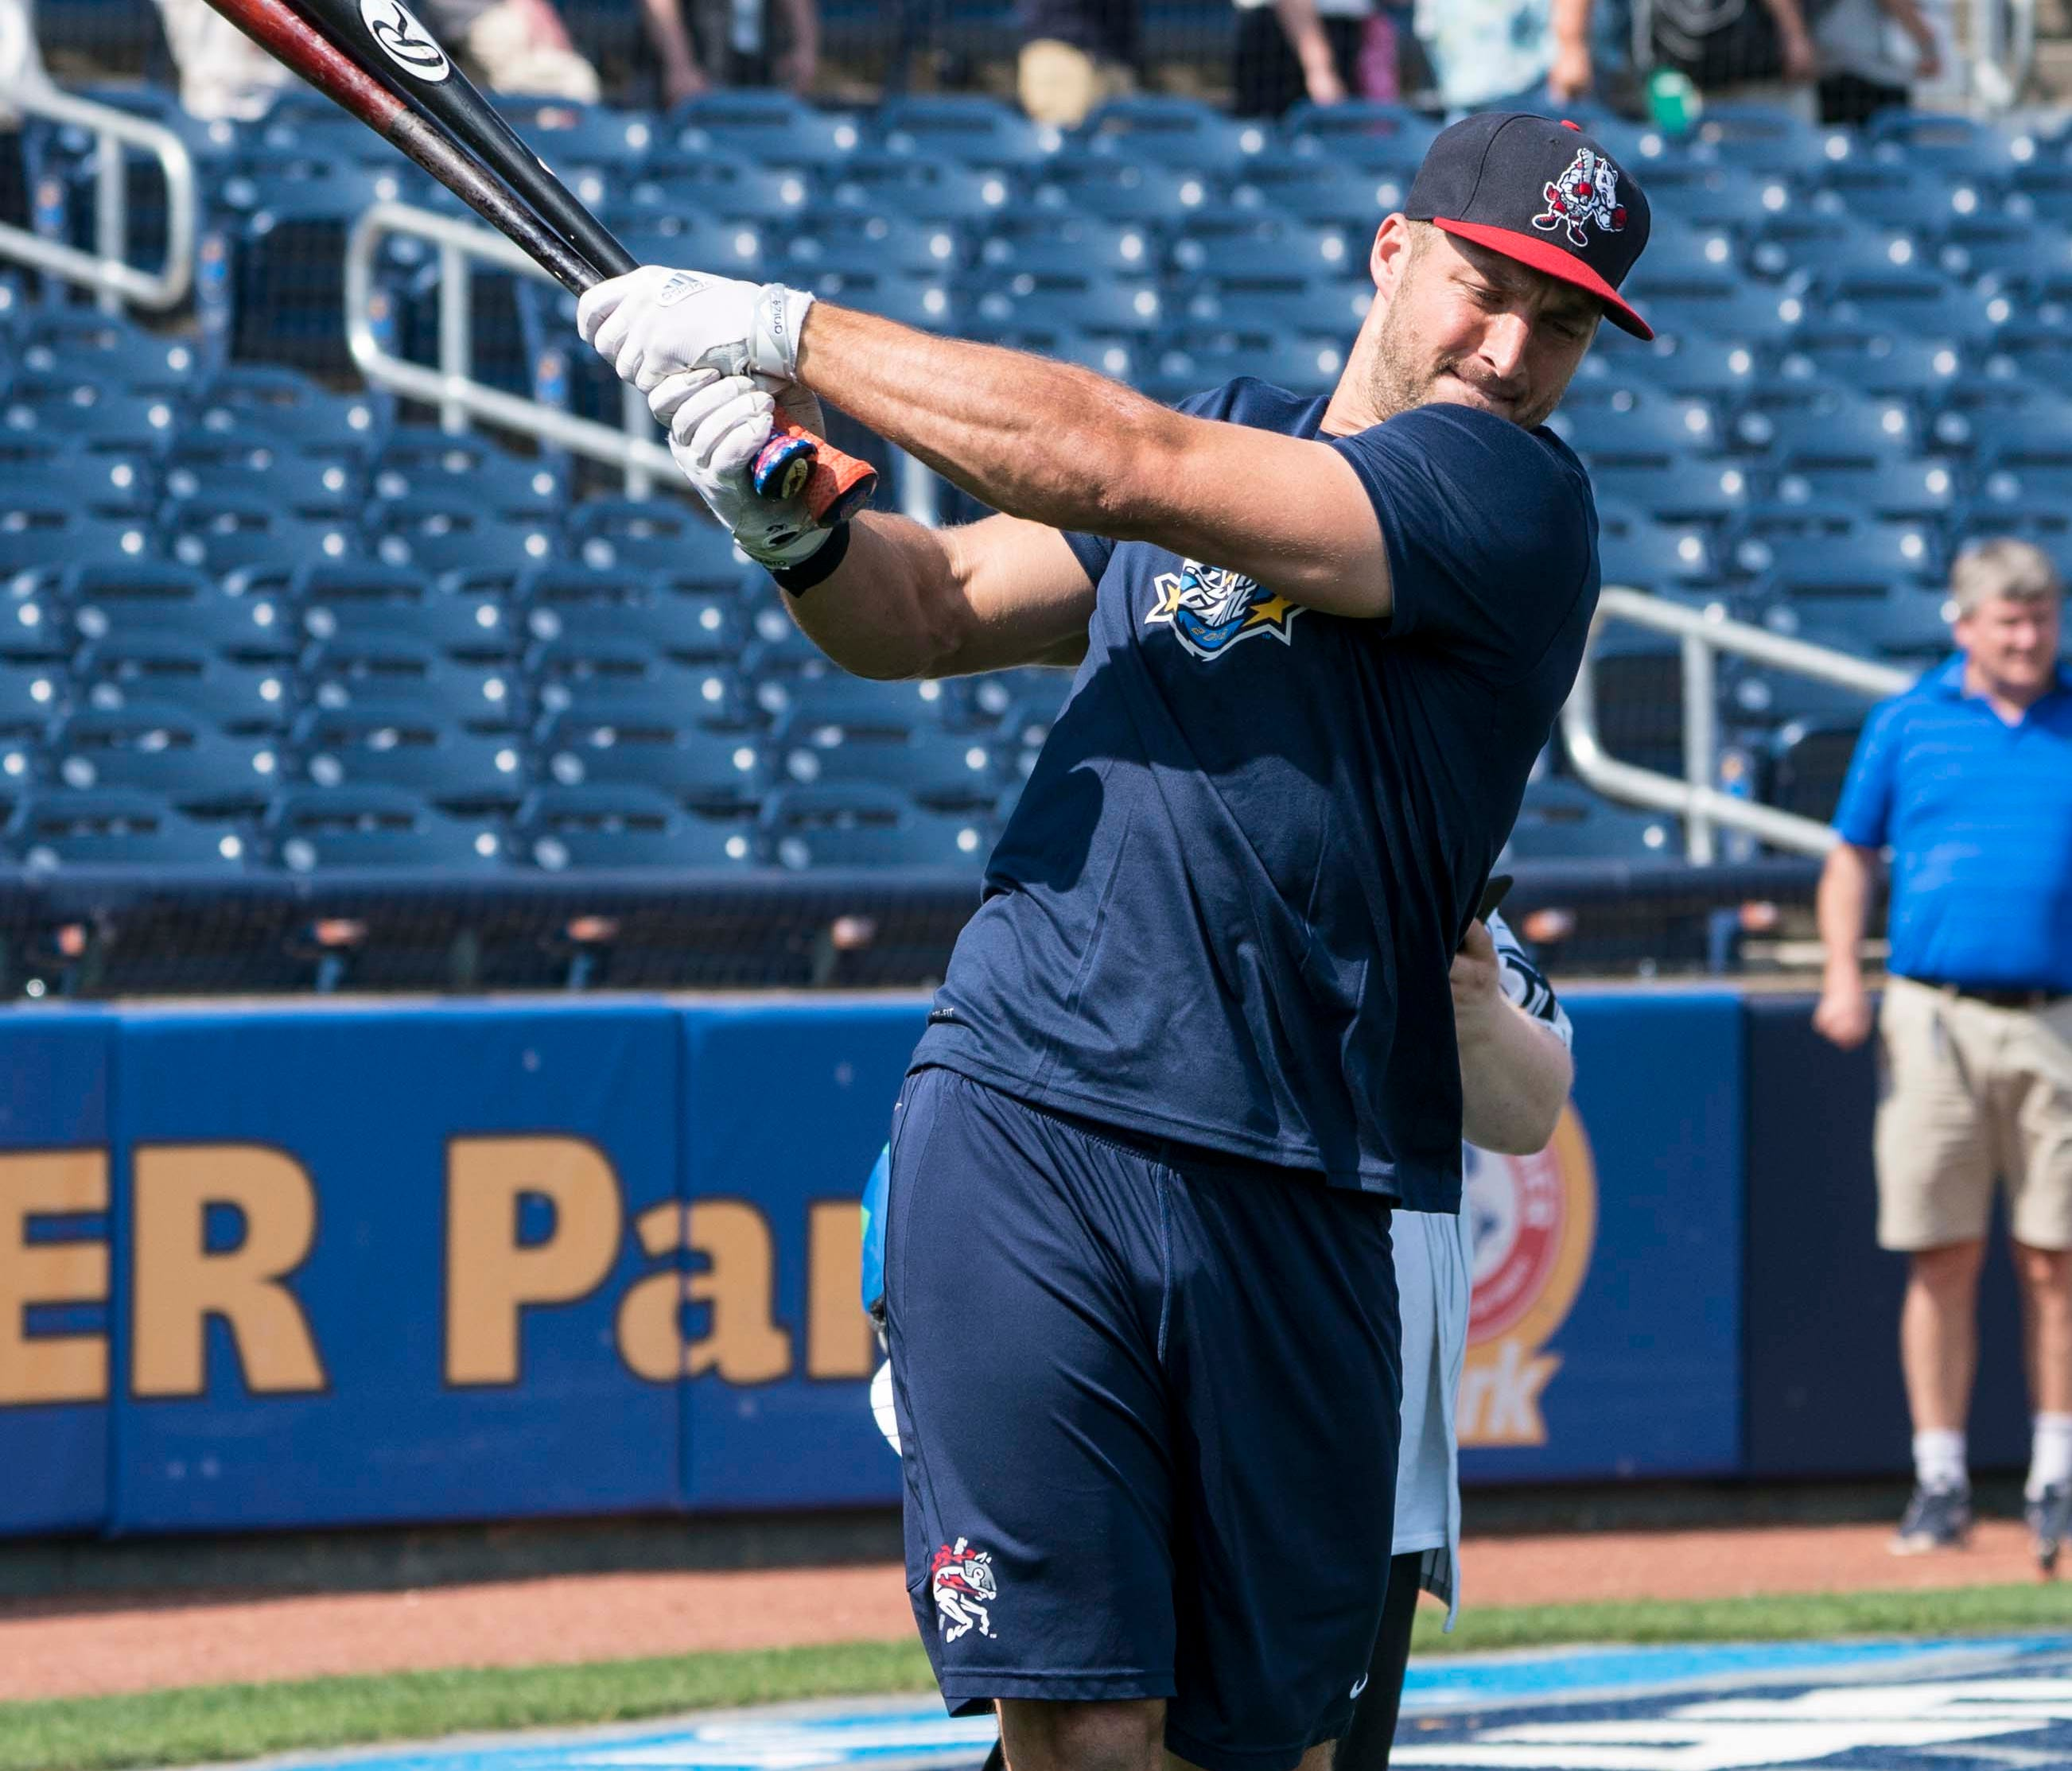 Jul 11, 2018; Trenton, NJ, USA; Binghamton Rumble Ponies outfielder Tim Tebow (15) warms up for batting practice at ARM & HAMMER Park. Mandatory Credit: Gregory J. Fisher-USA TODAY Sports ORG XMIT: USATSI-384347 ORIG FILE ID:  20180711_szo_fb5_01